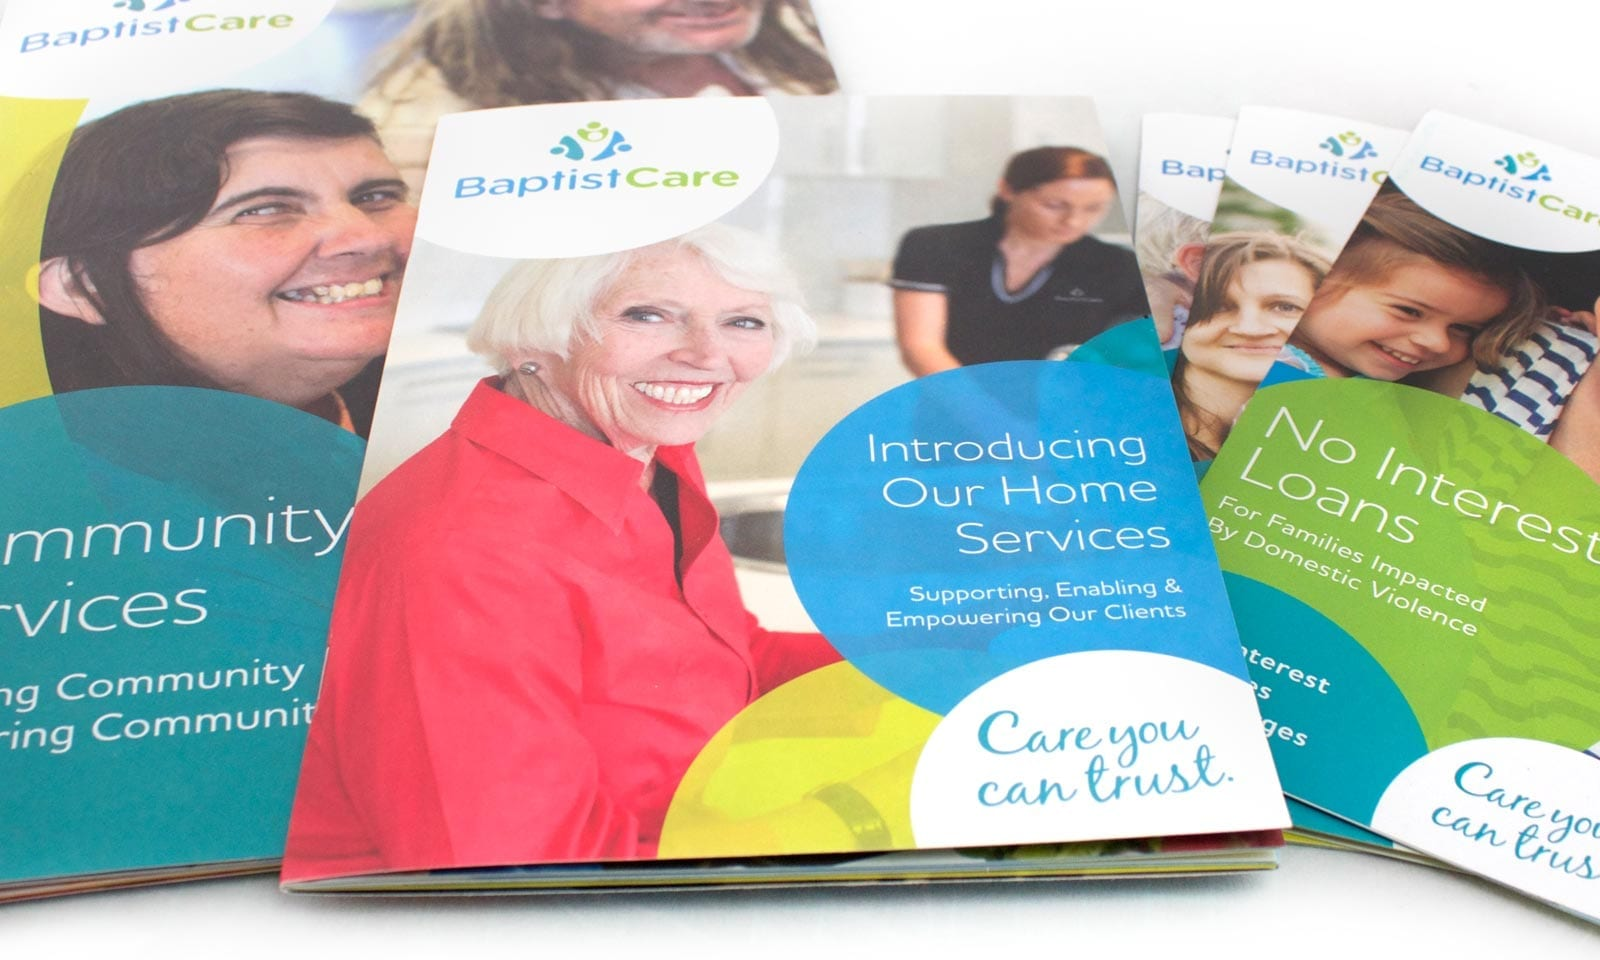 BaptistCare collateral and stationary branding.